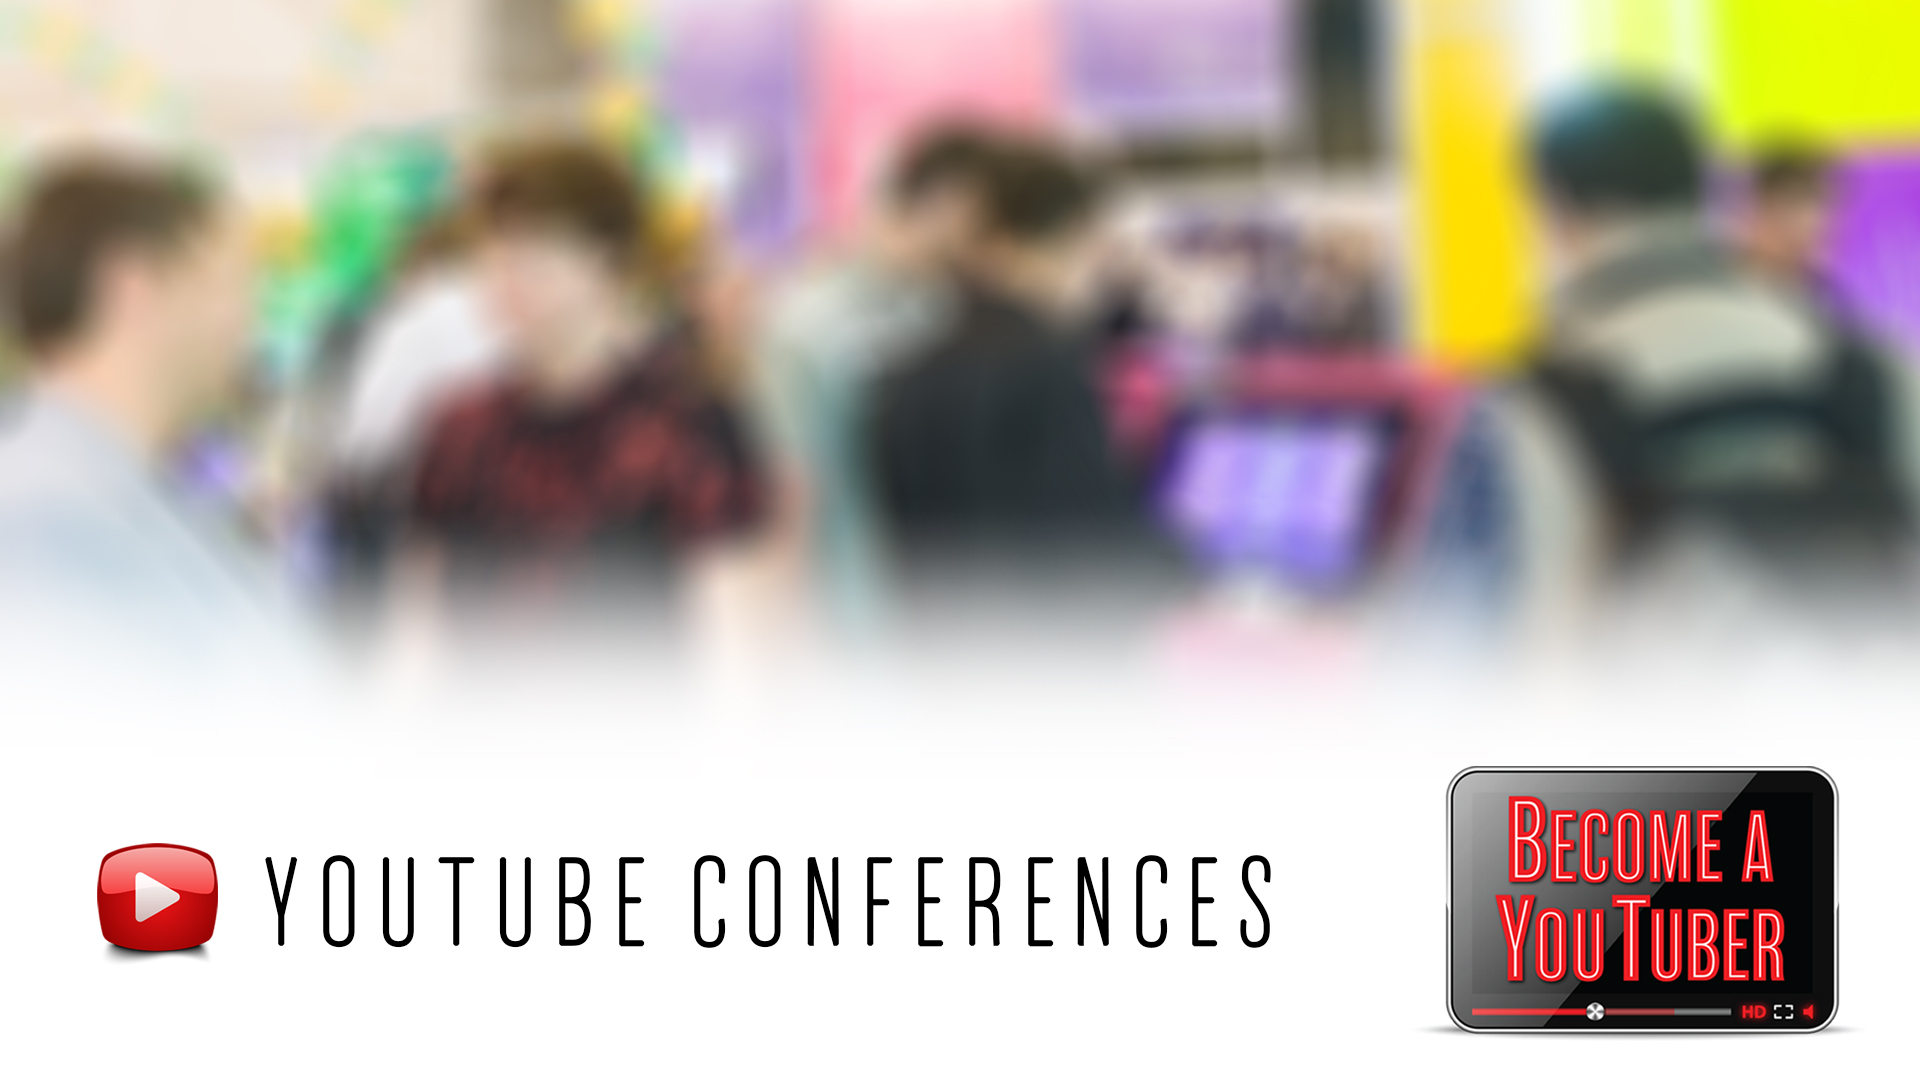 YouTube Conferences